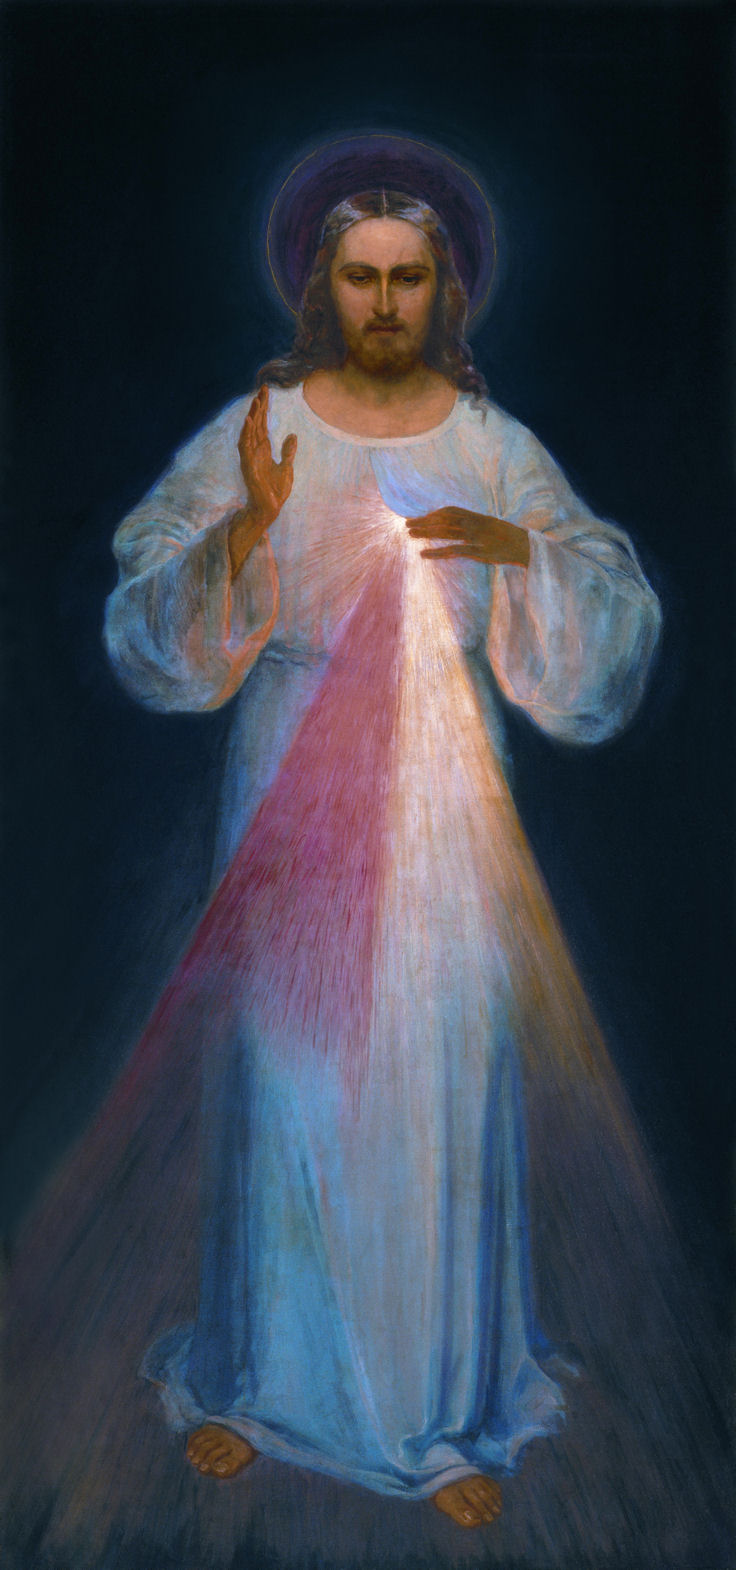 Divine Mercy (painting by Kazimirowski - the first version)